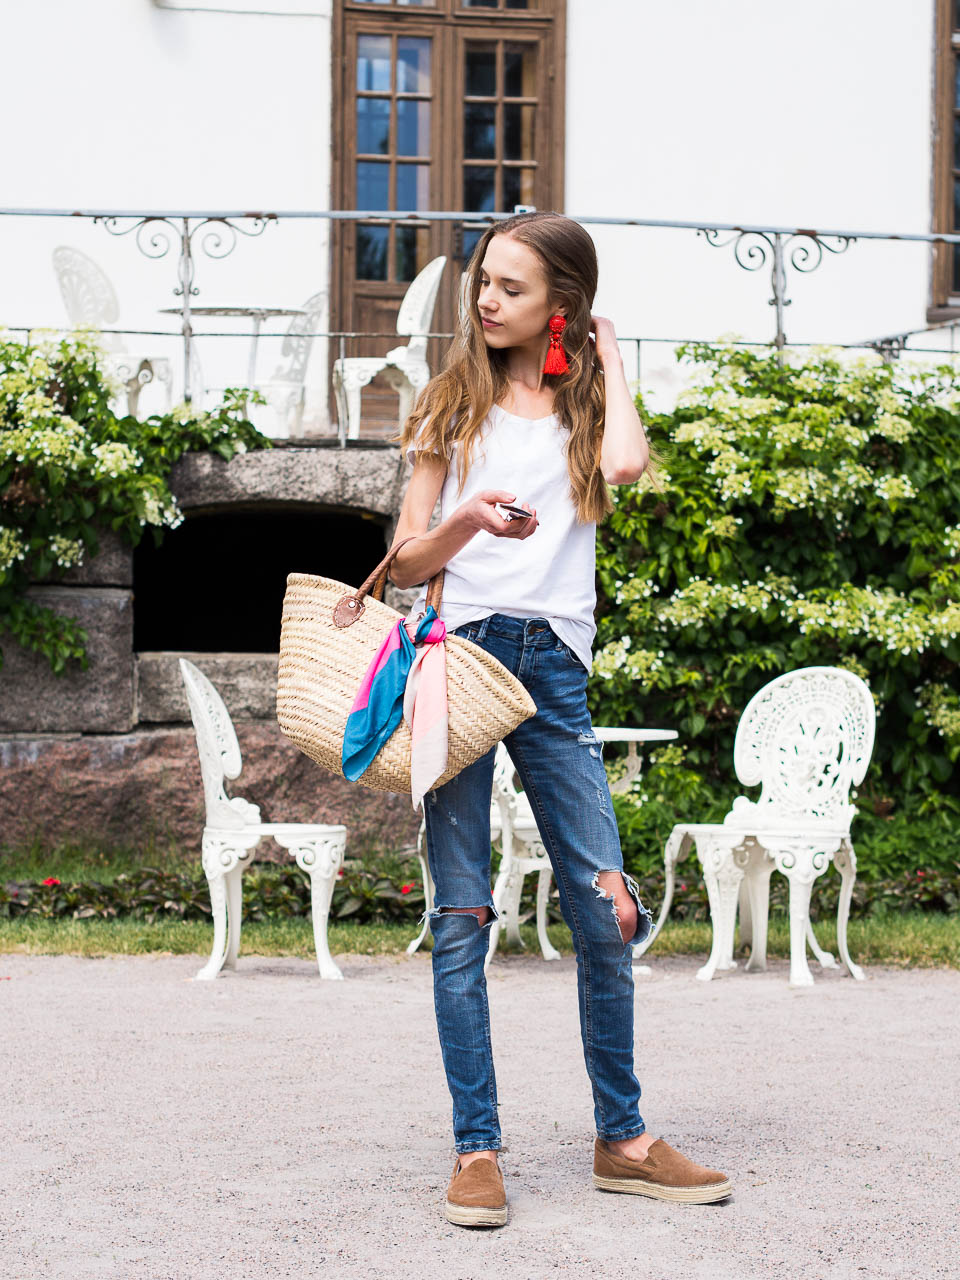 fashion-inspiration-summer-trends-basket-bag-distressed-denim